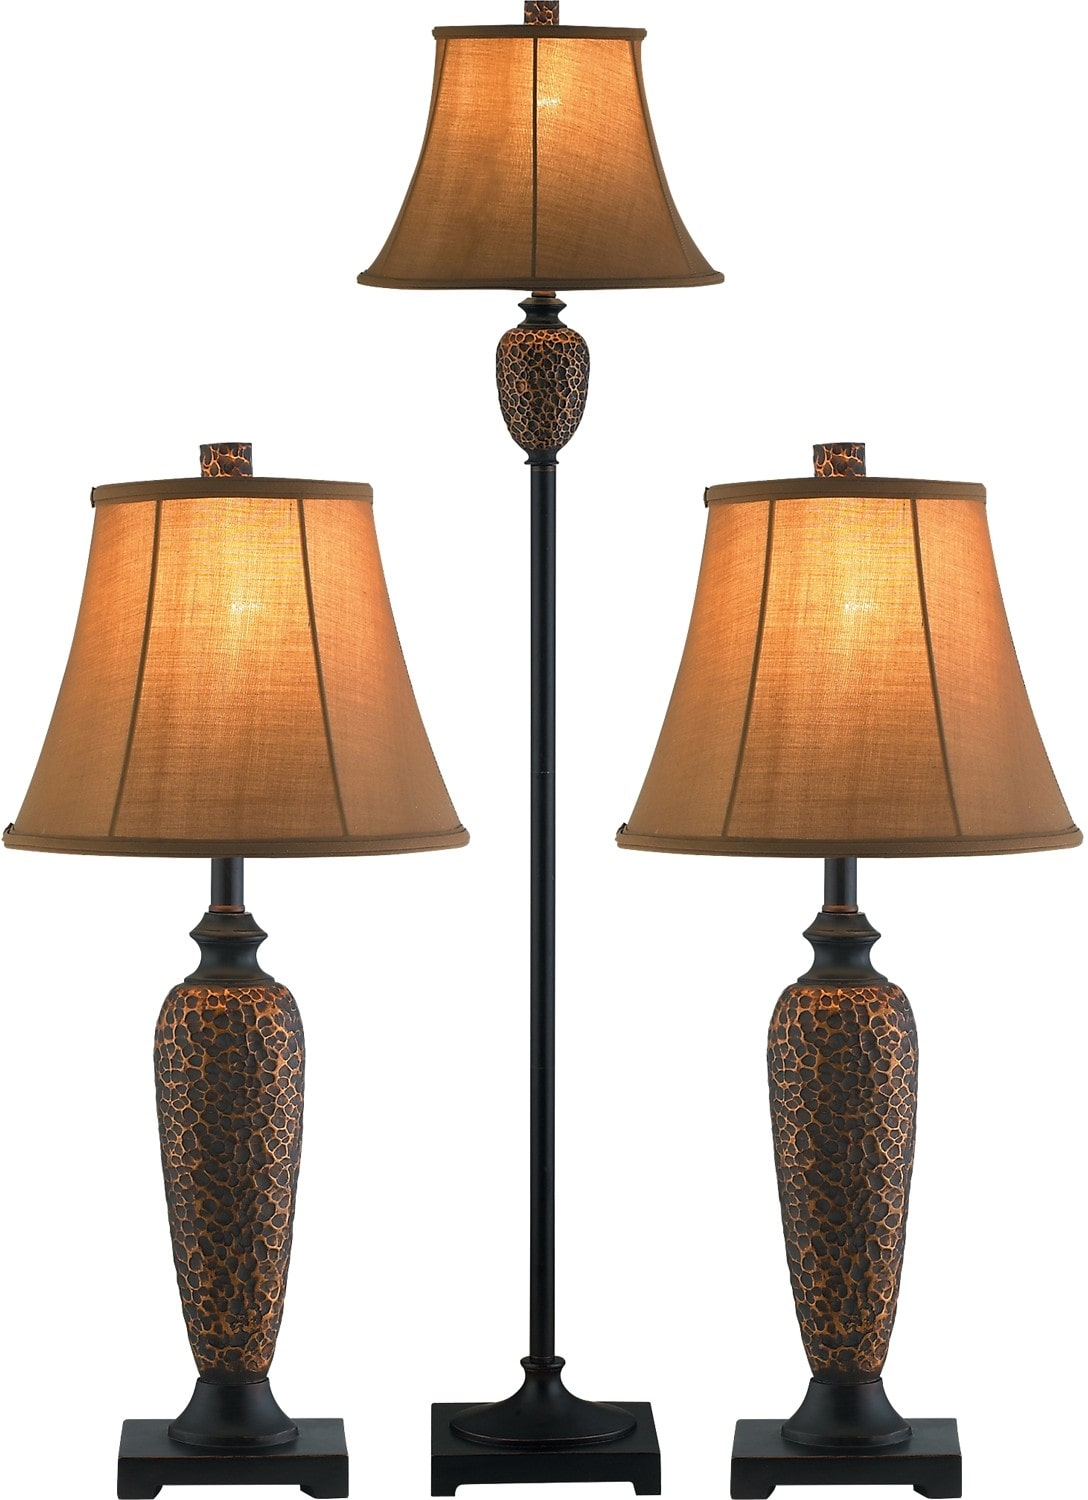 Home Accessories - Hammered Bronze 3-Piece Floor and Two Table Lamps Set